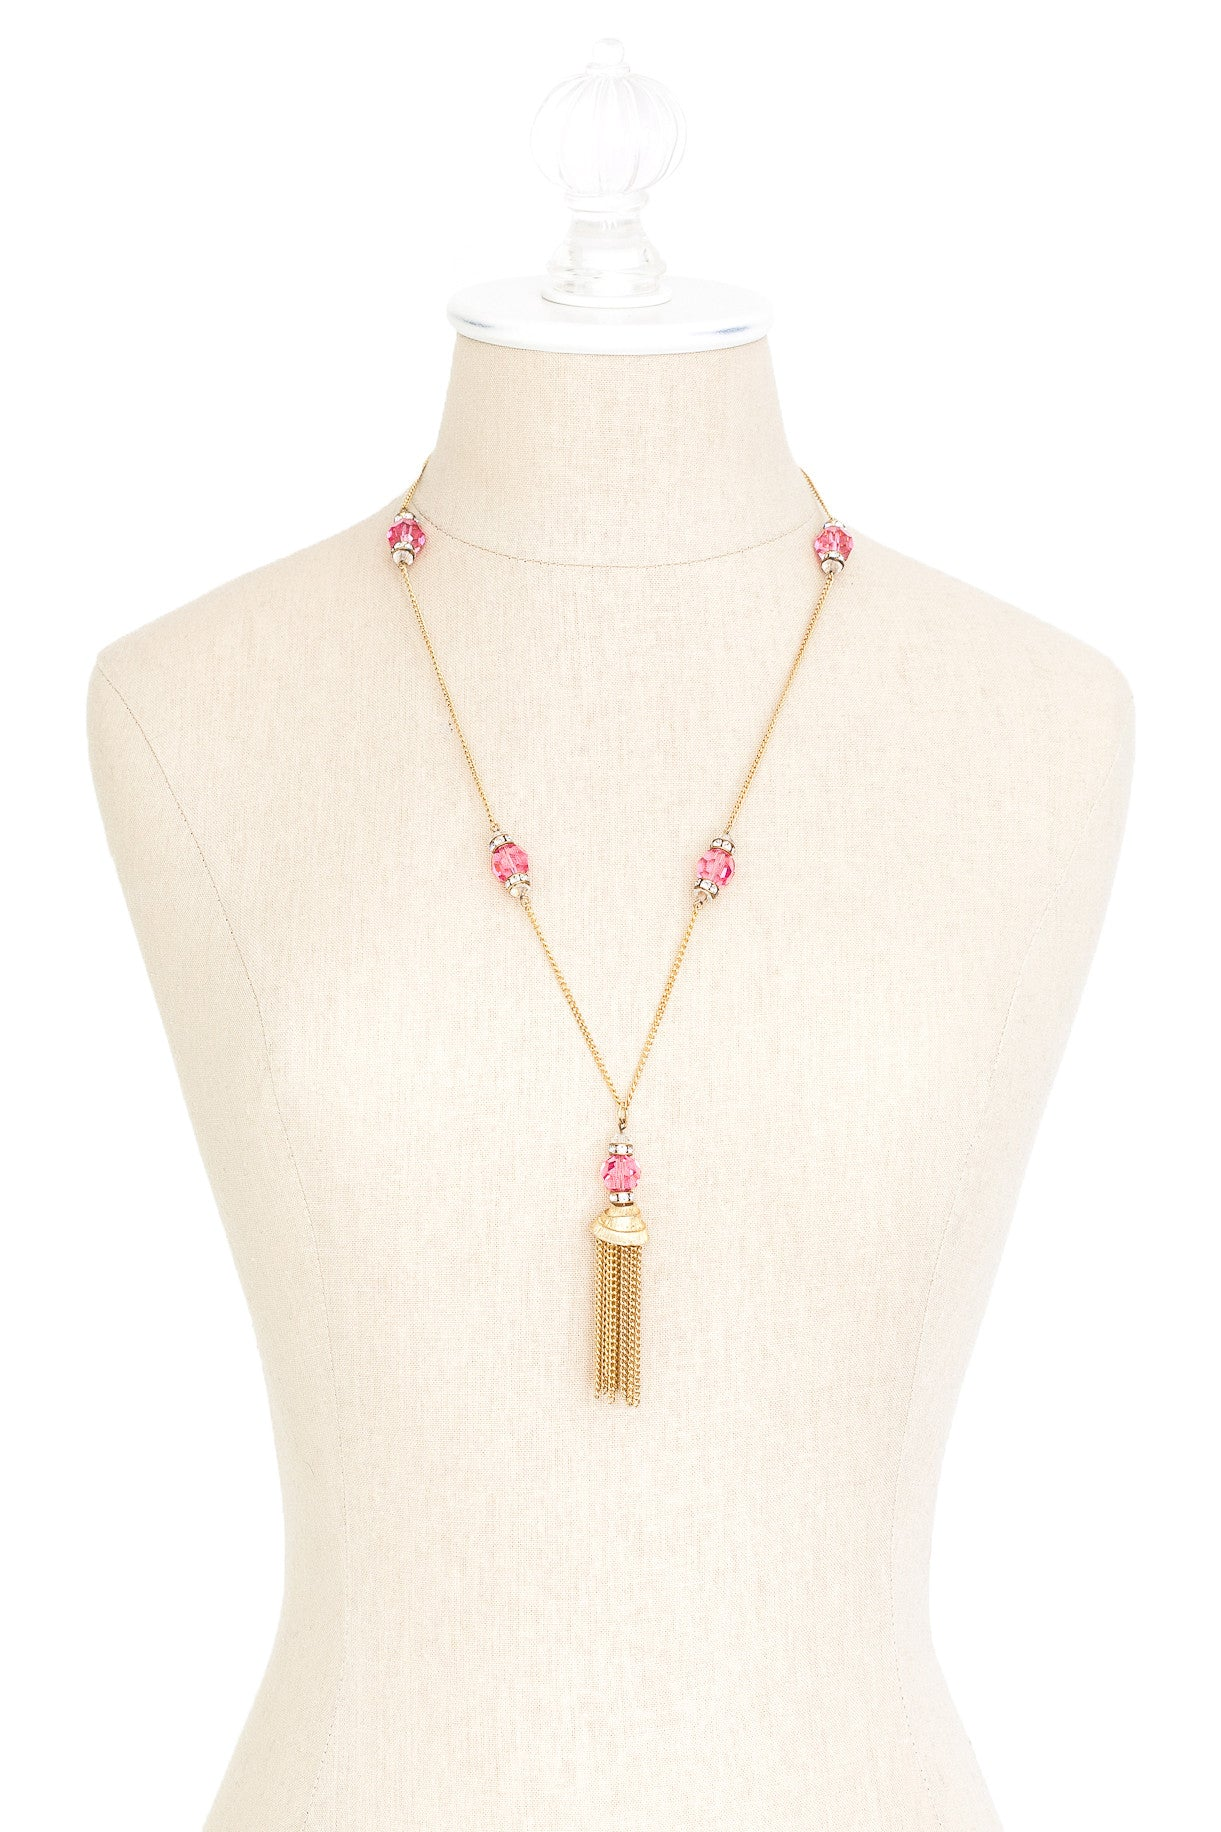 70's__Vintage__Pink Crystal Tassel Necklace